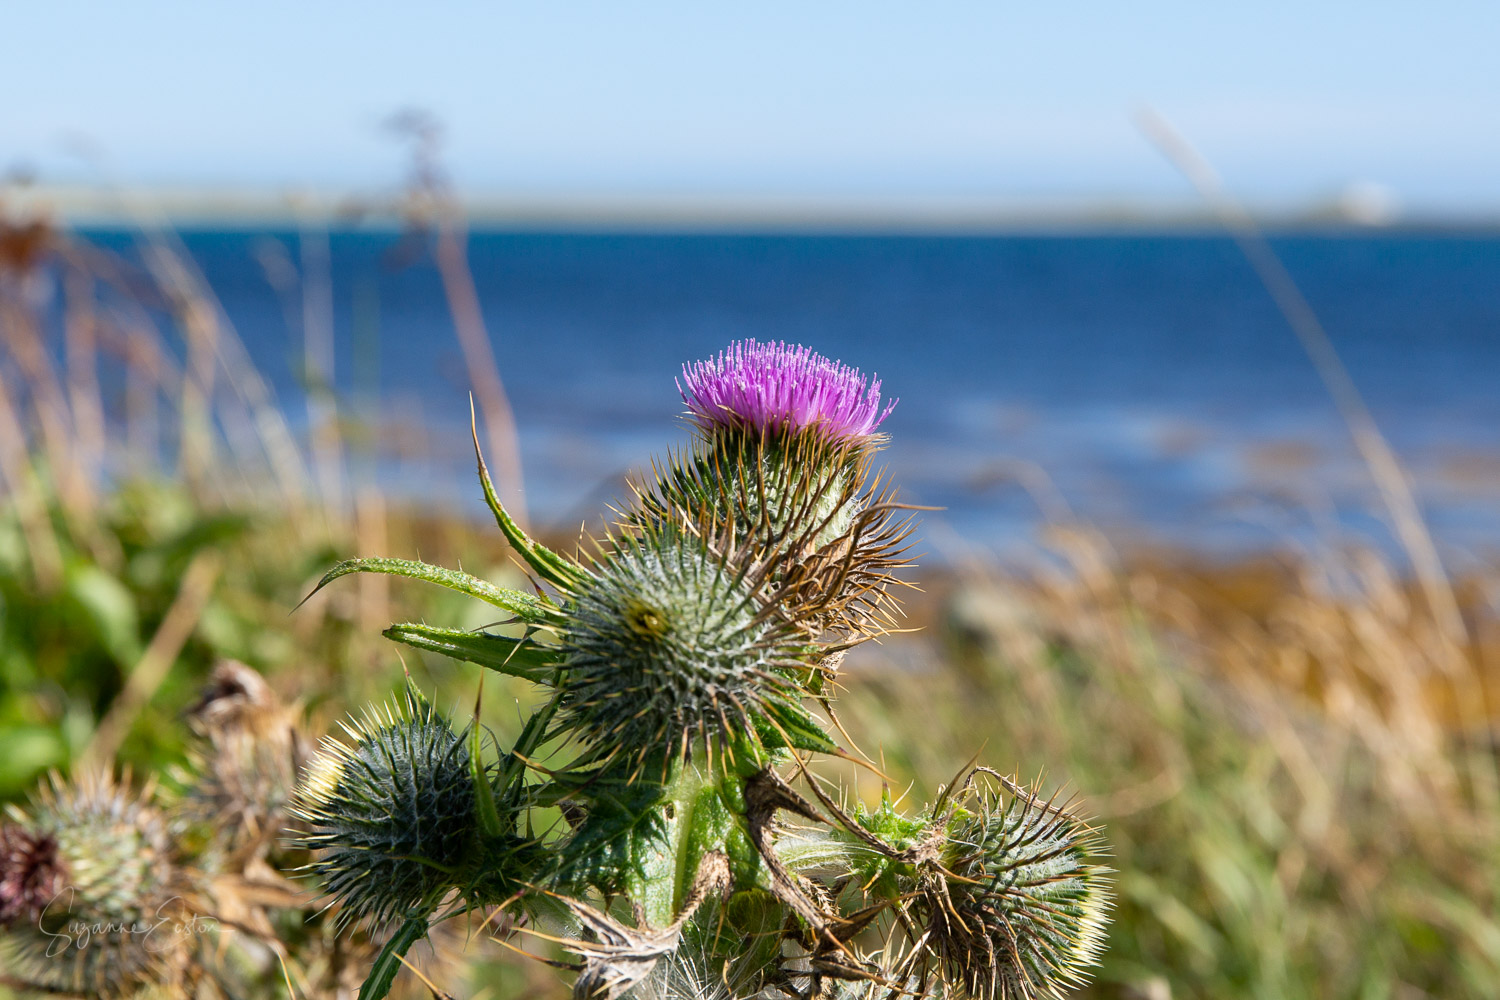 Scottish Thistle at Sty Wick